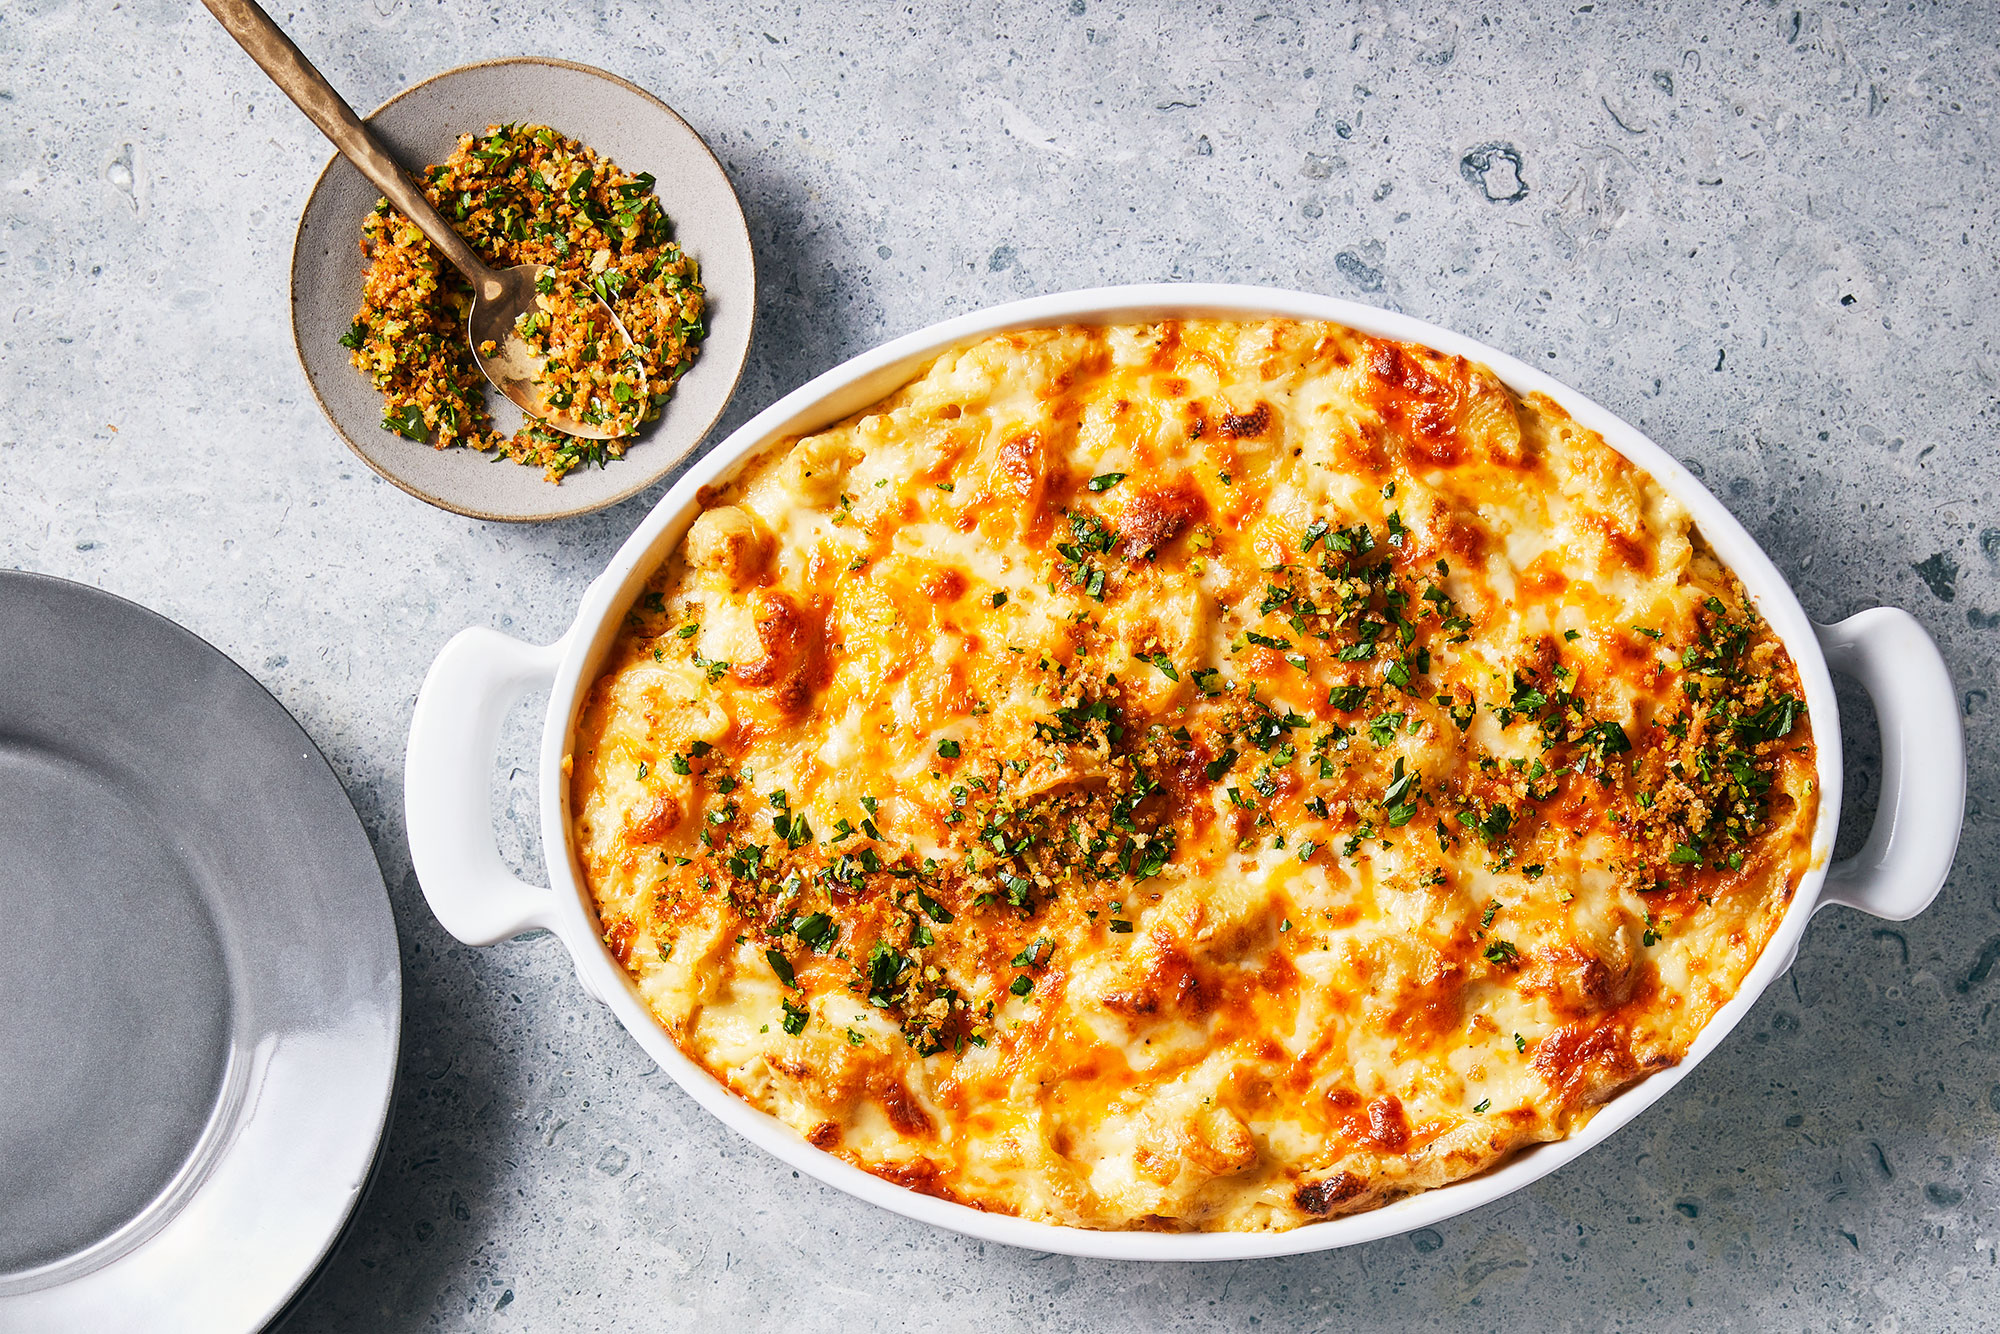 Baked Shells with Gremolata Breadcrumbs